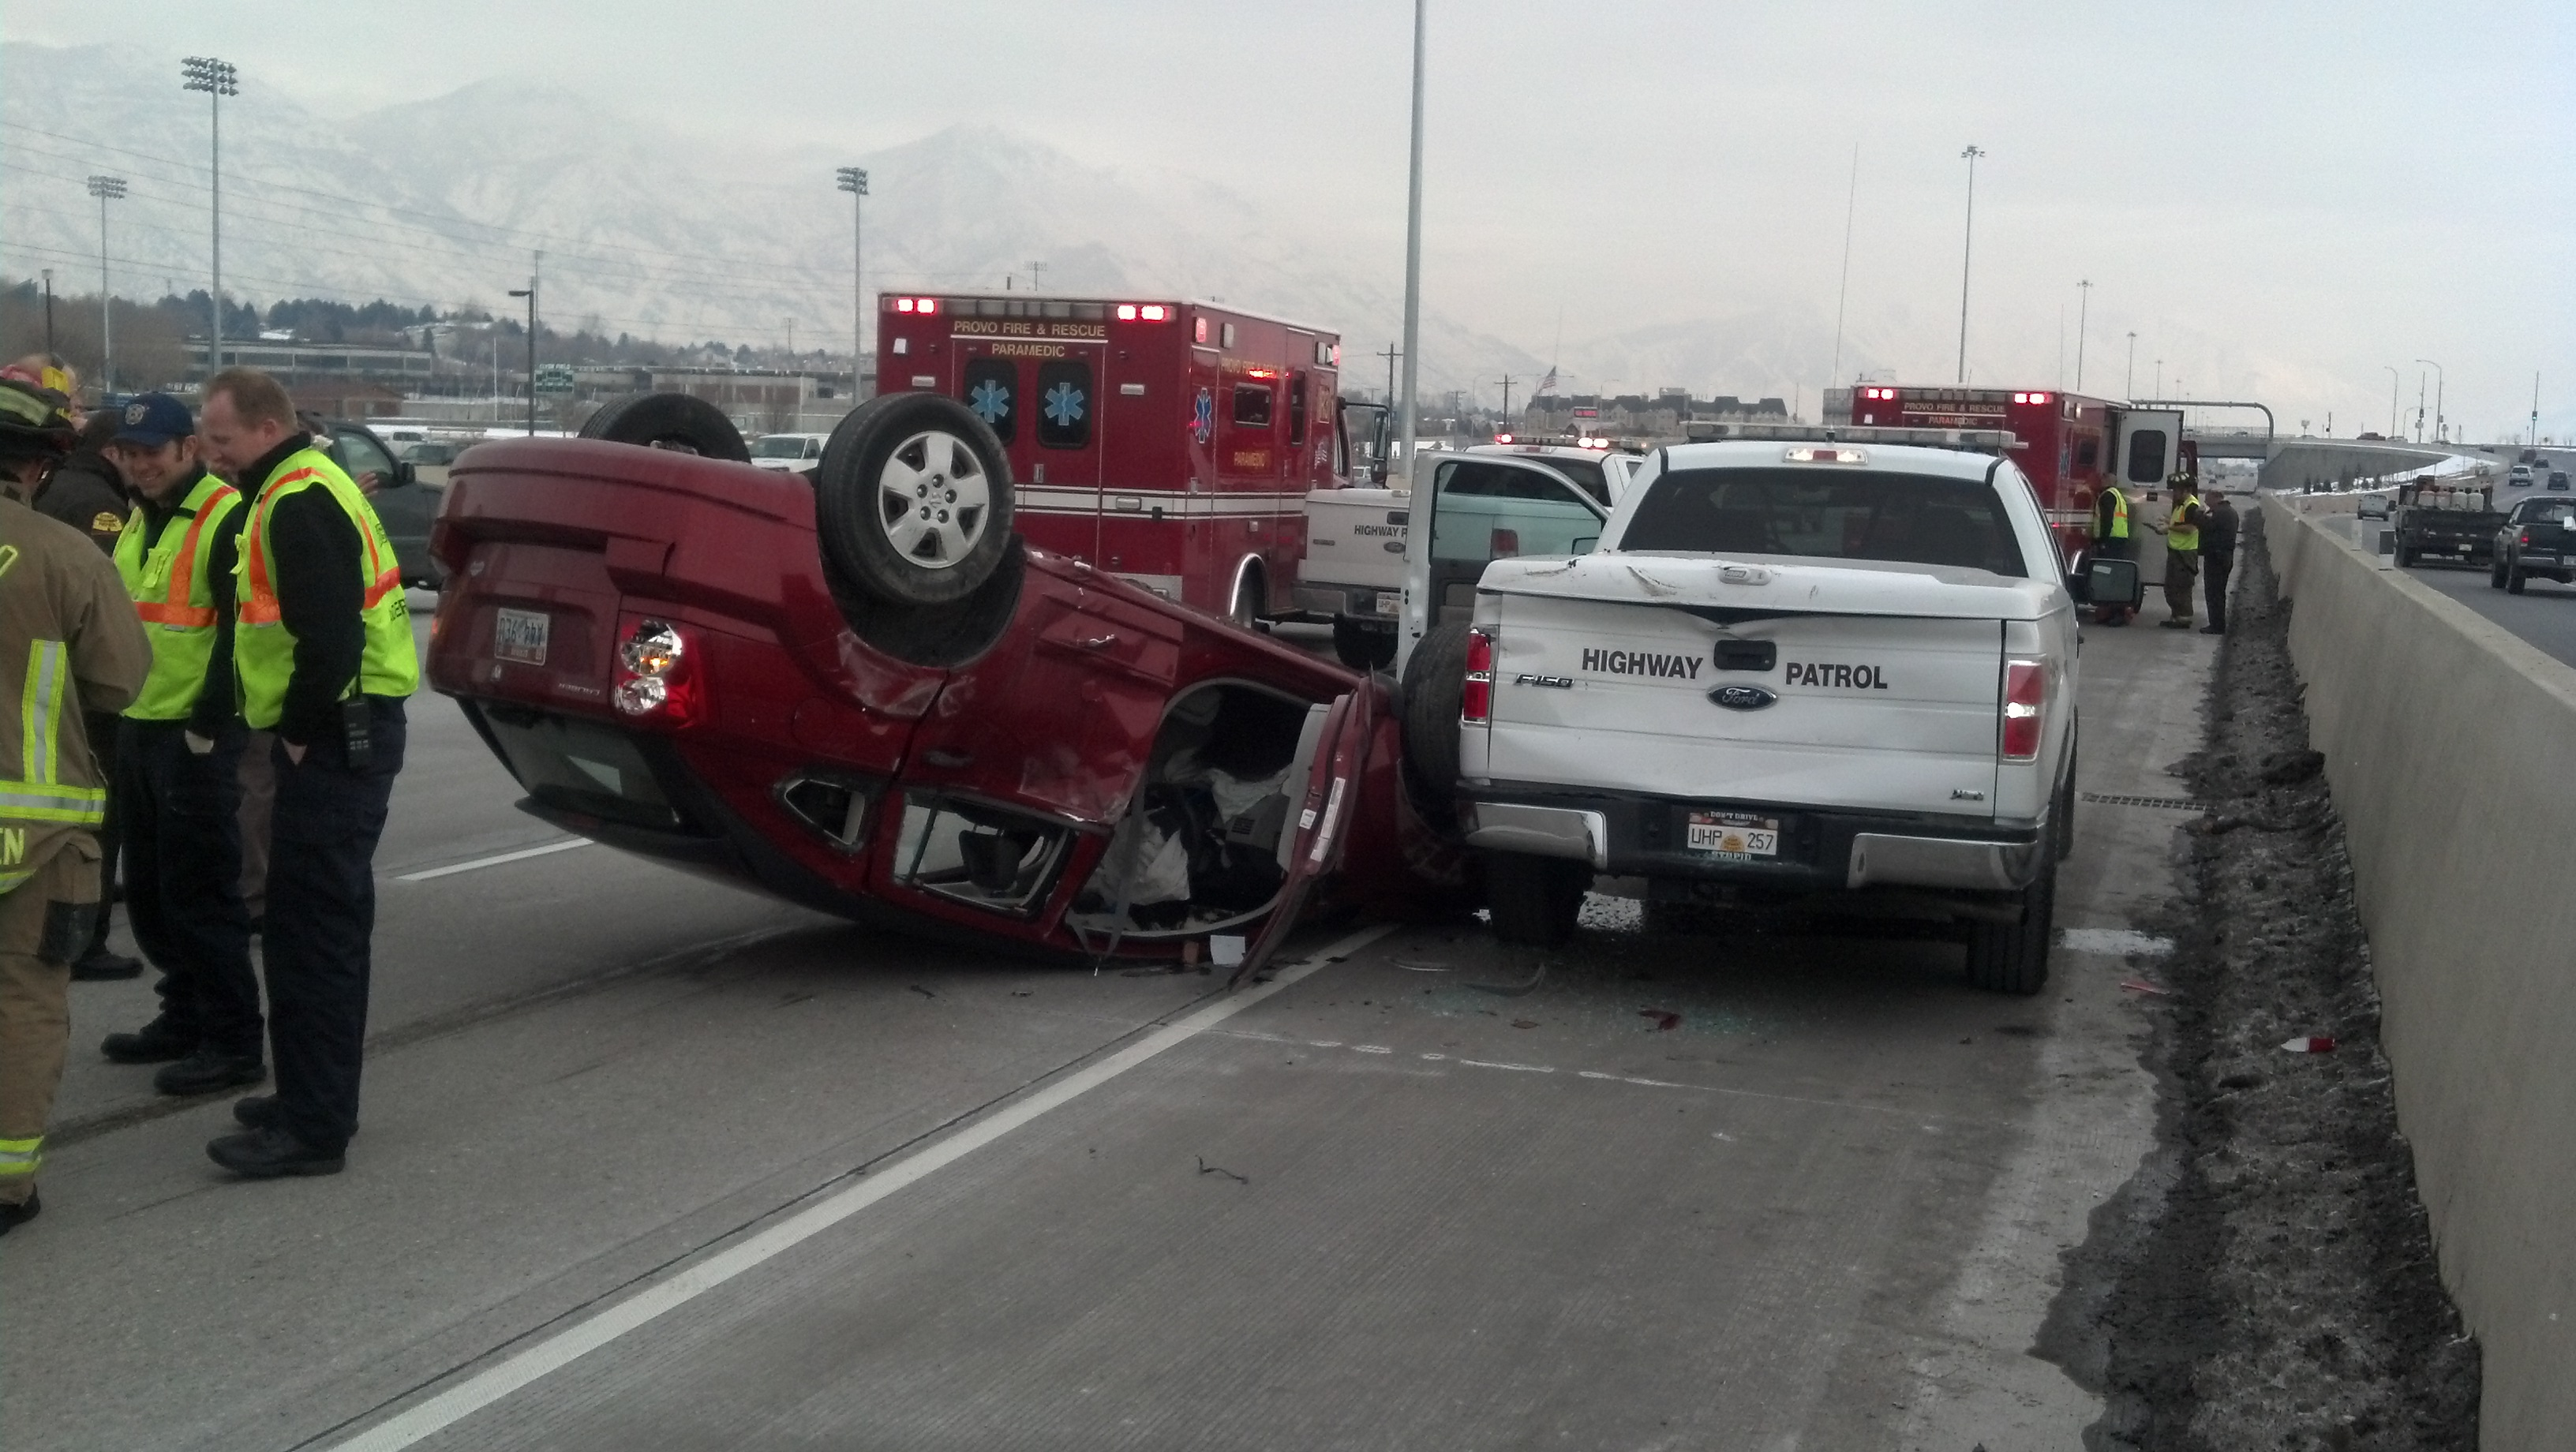 The shoulder of the road is dangerous and can be deadly. Photo shows a car that flipped upside down after striking a UHP vehicle on the shoulder.